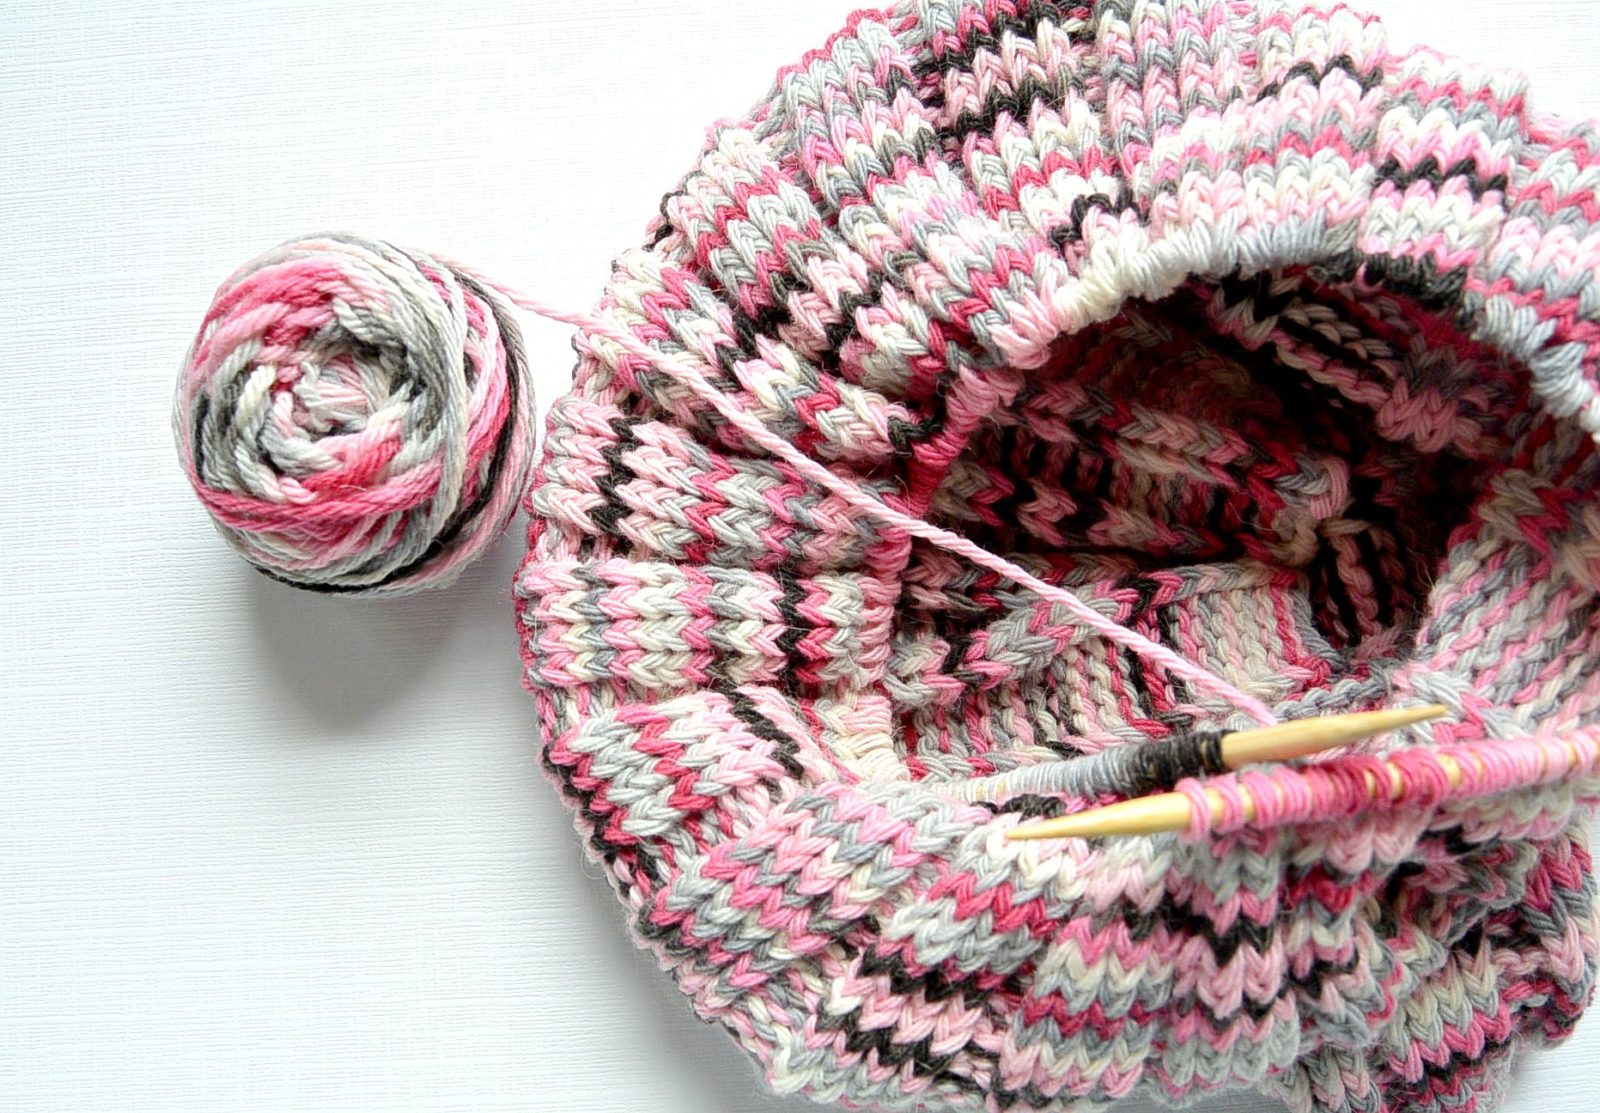 Knitting Rib Stitch On Circular Needles : Pattern time wide ribbed neopolitan knit cowl mama in a